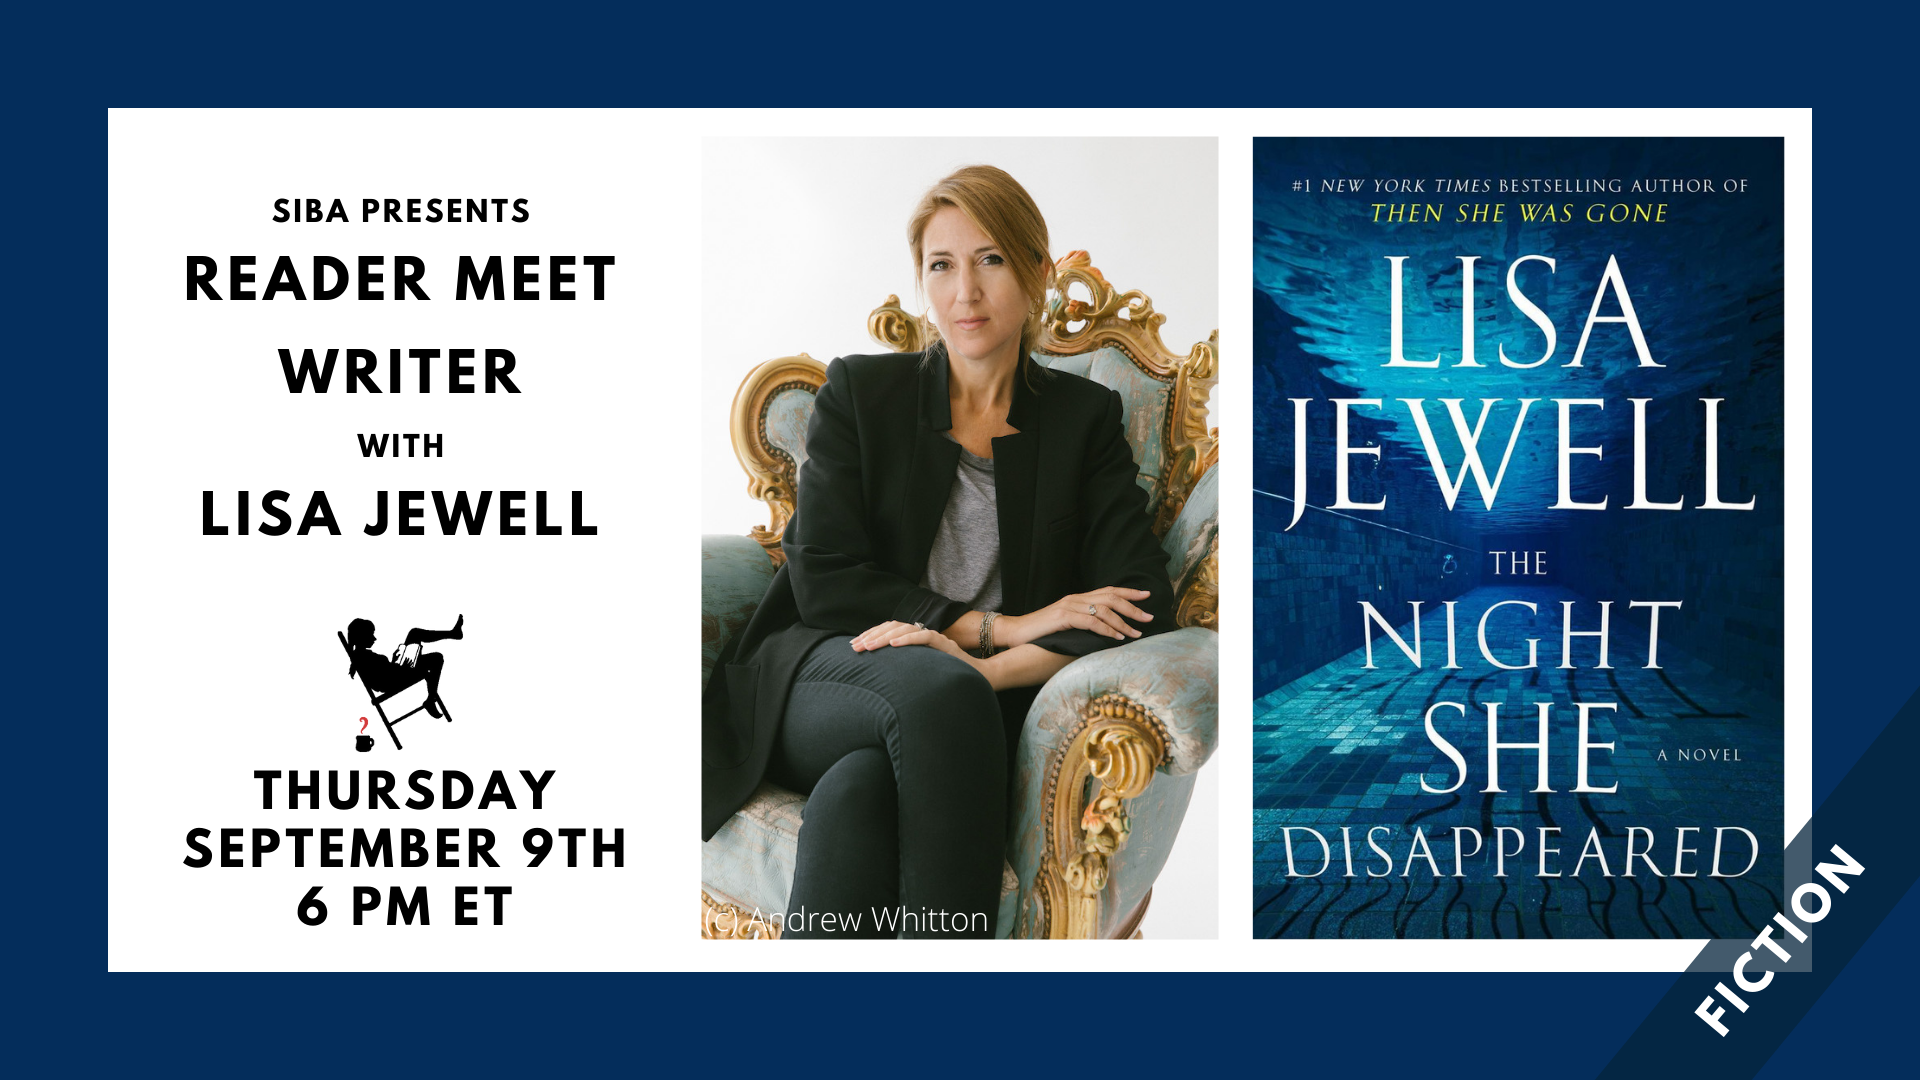 Image shows a blue border with a white box containing a photo of Lisa Jewell and image of the cover of the book THE NIGHT SHE DISAPPEARED with the text: Siba presents Reader Meet Writer with Lisa Jewell. Thursday, September 9th, 6 PM ET.